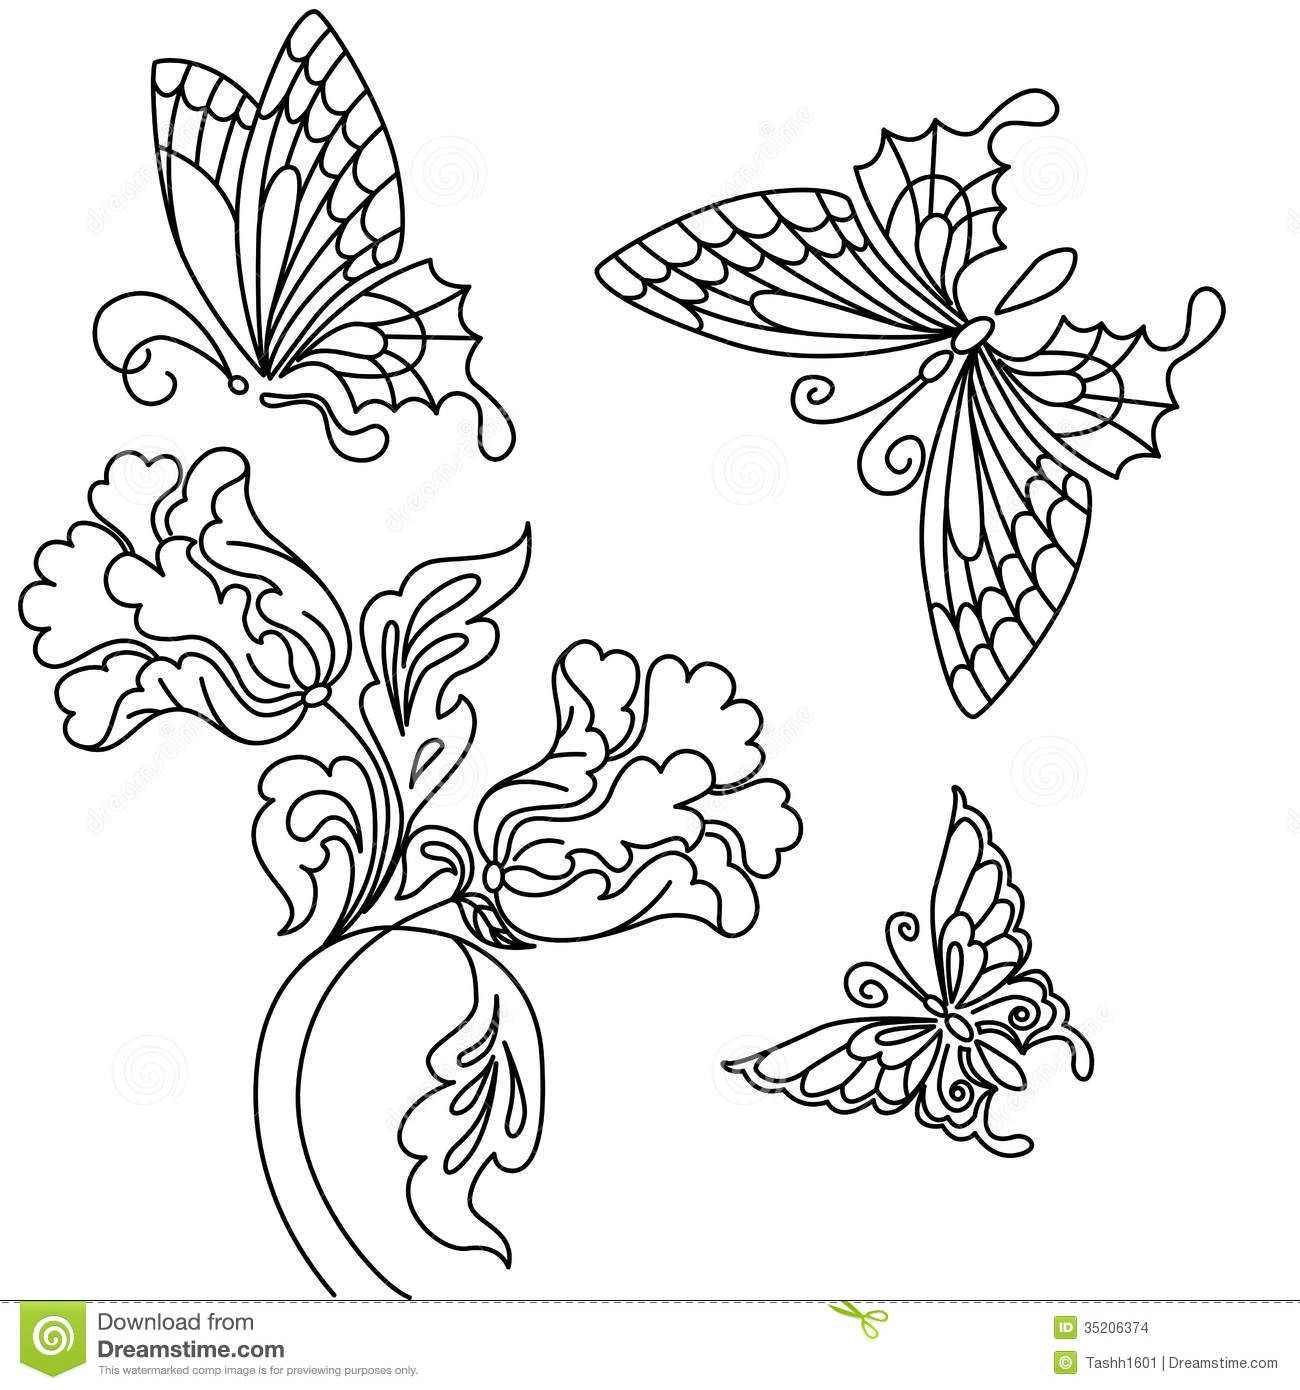 pencil drawings of flowers and vines Google Search